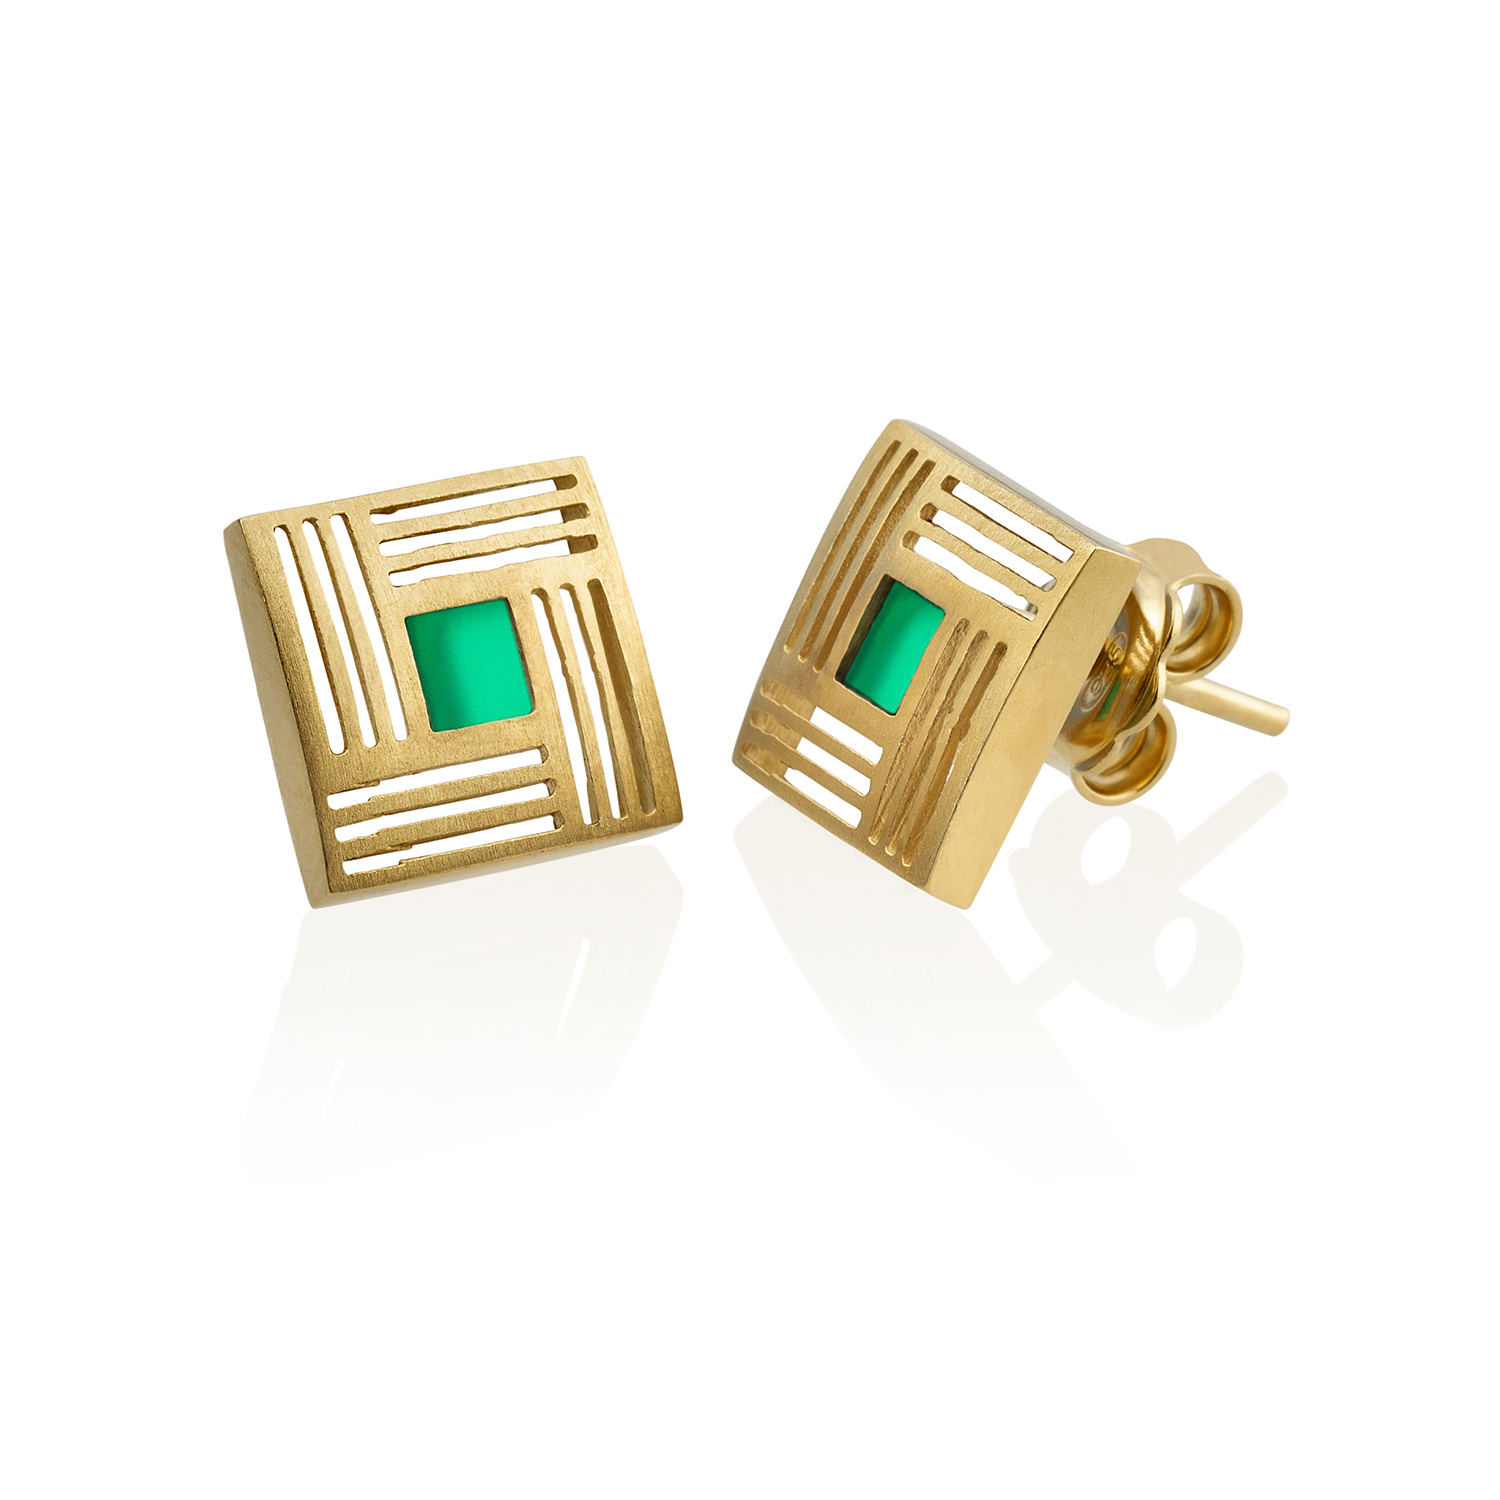 Llum small earrings